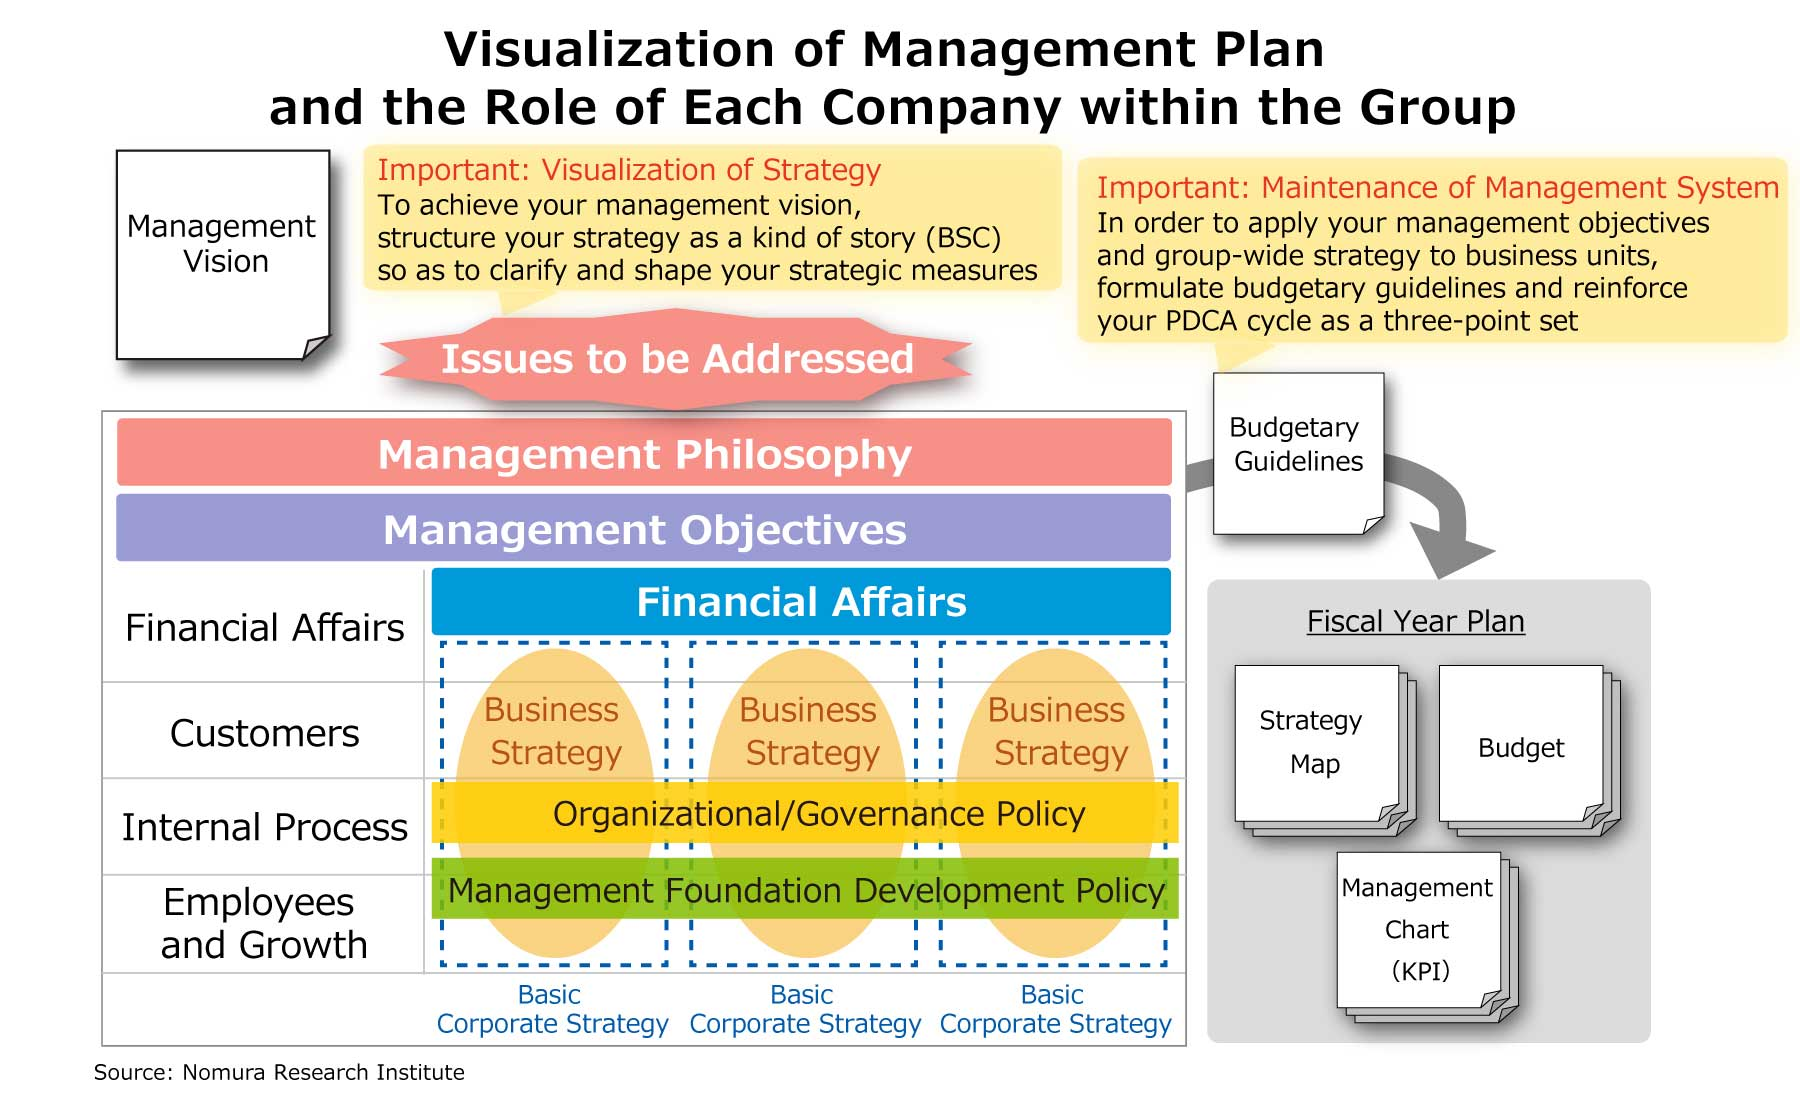 Visualization of Management Plan and the Role of Each Company within the Group